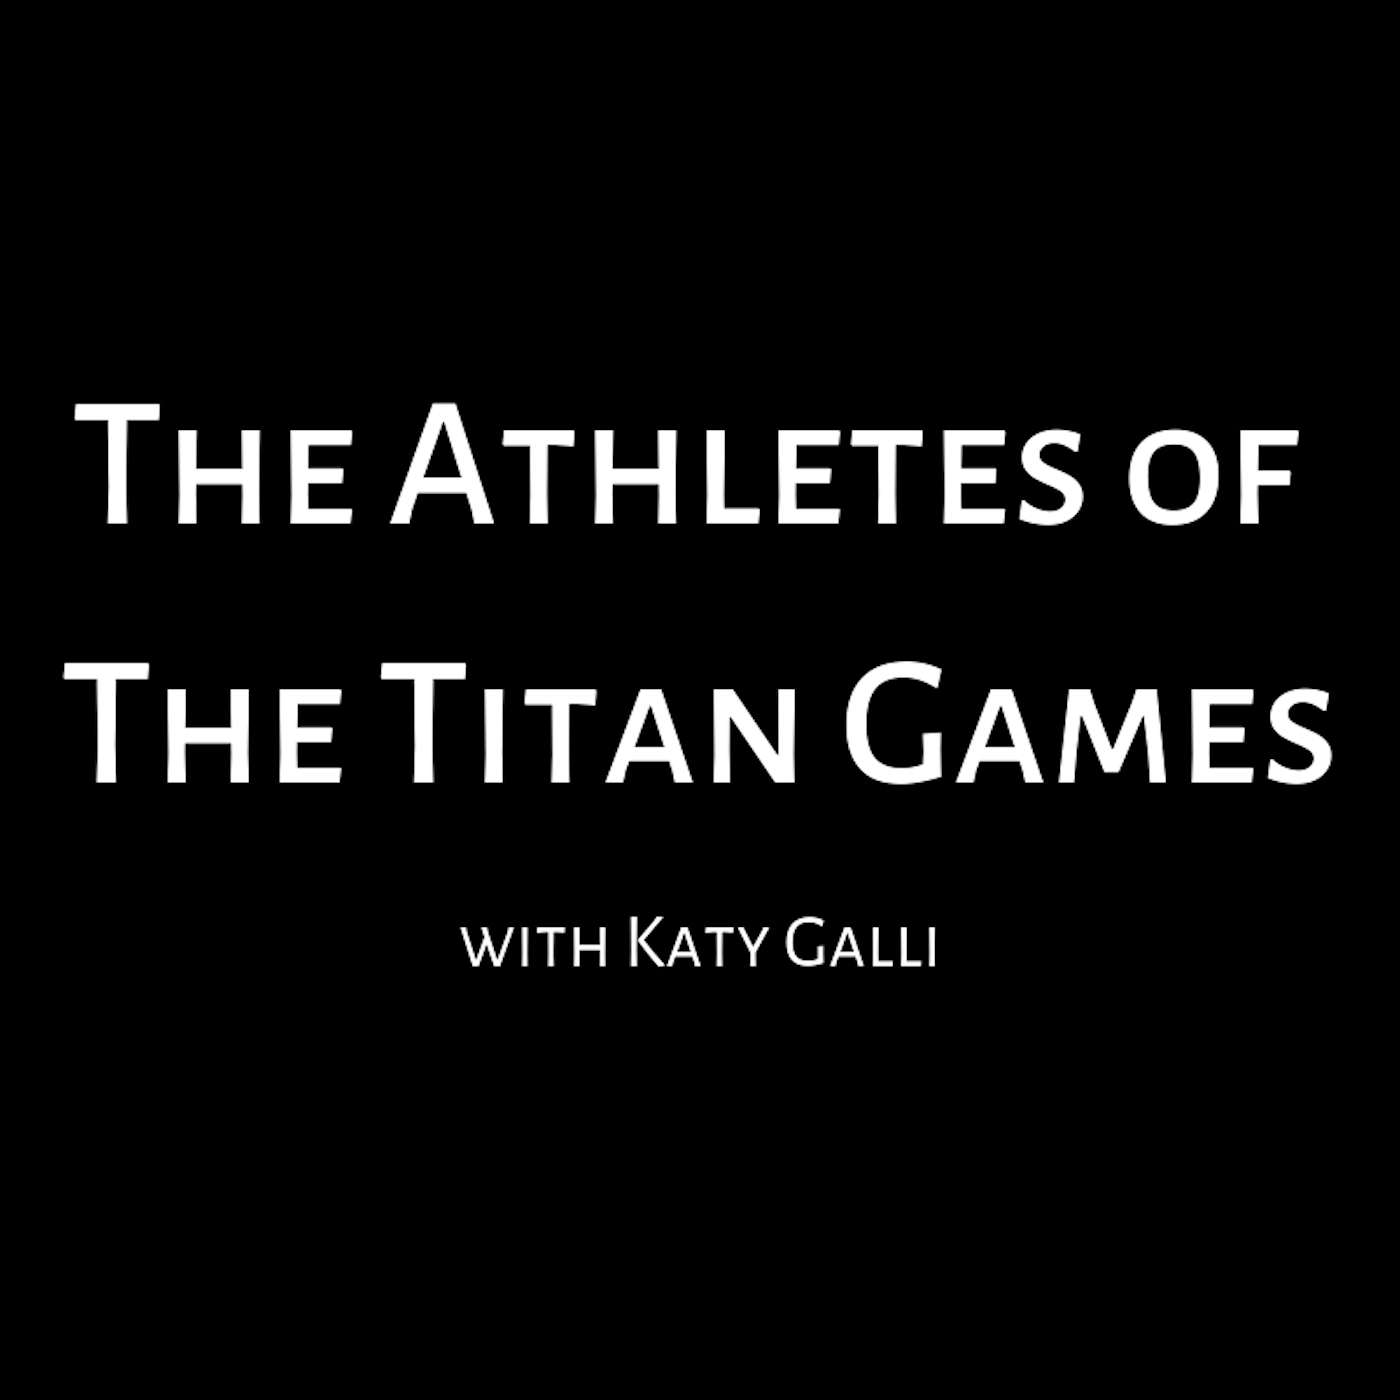 The Athletes of the Titan Games